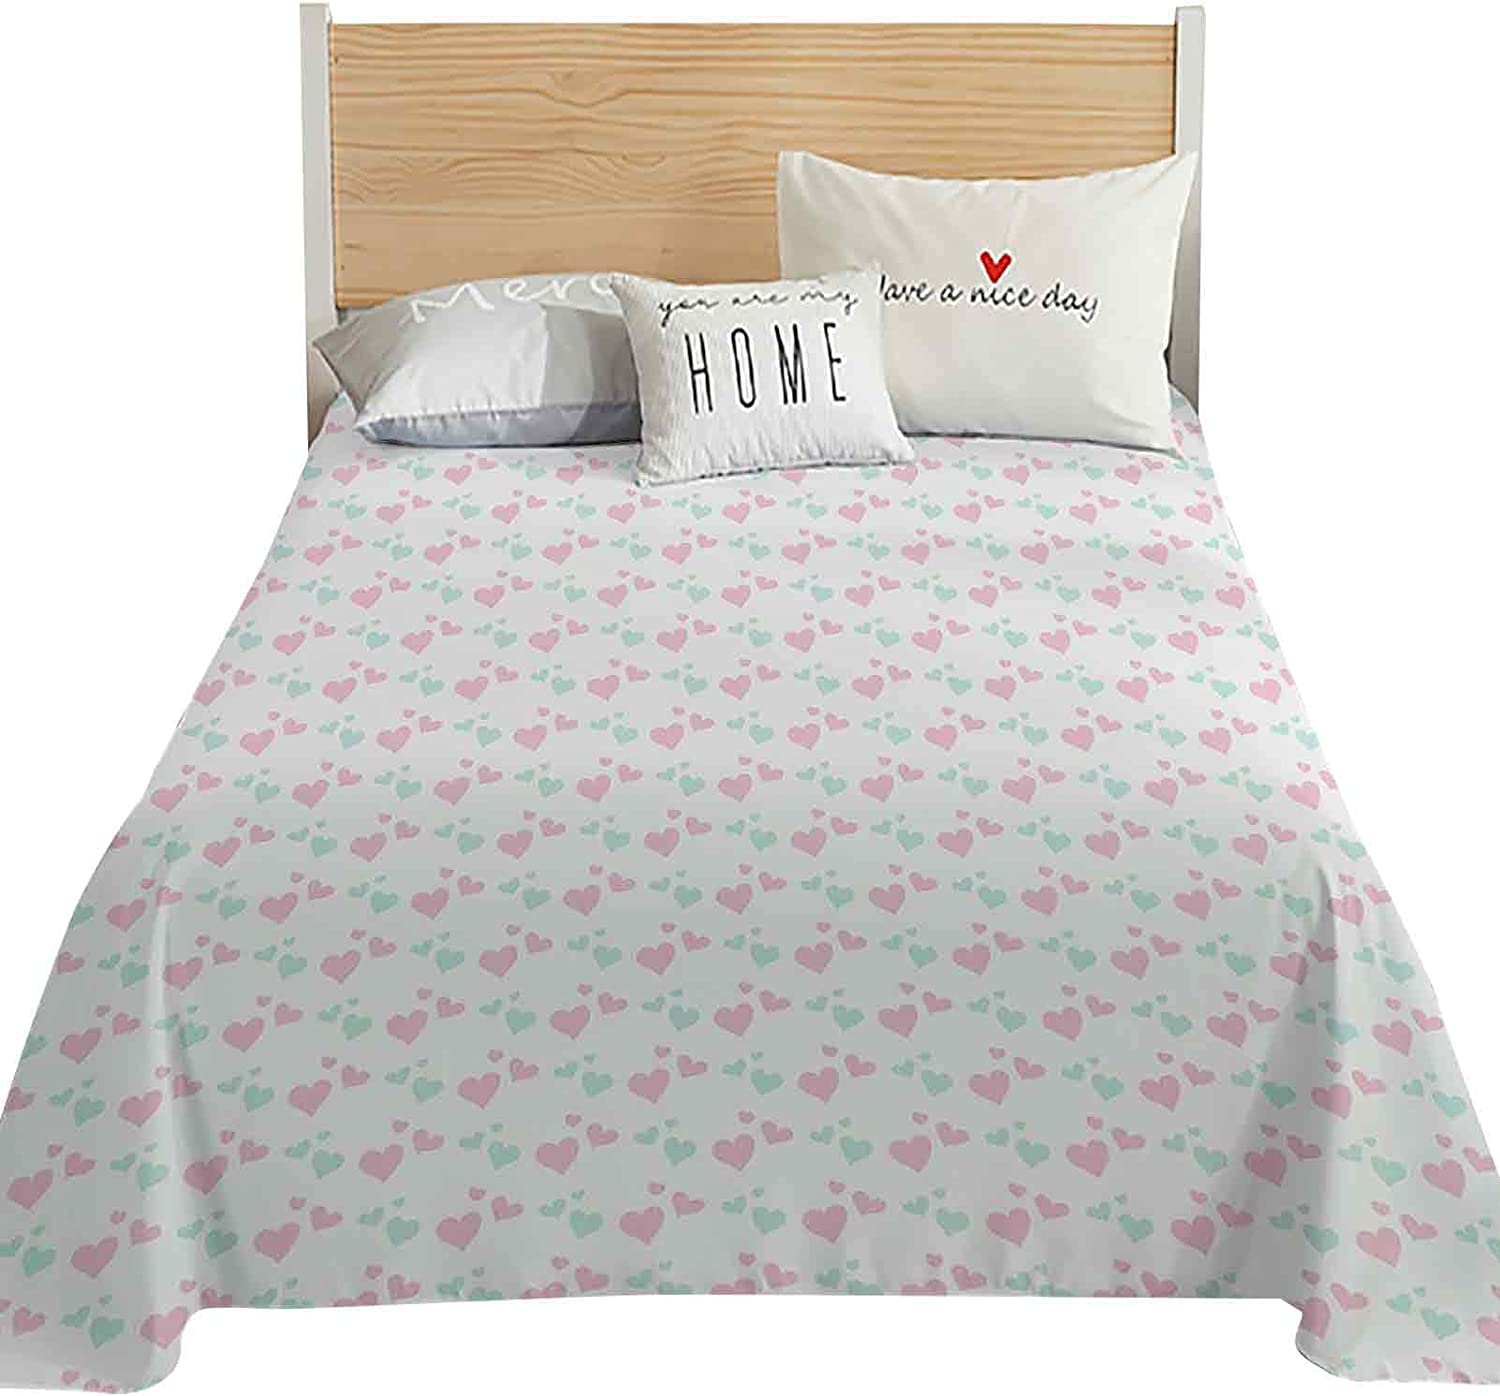 Kids Twin Size Quantity limited Louisville-Jefferson County Mall Flat Sheet Only Car Room Girls of Image Inspired